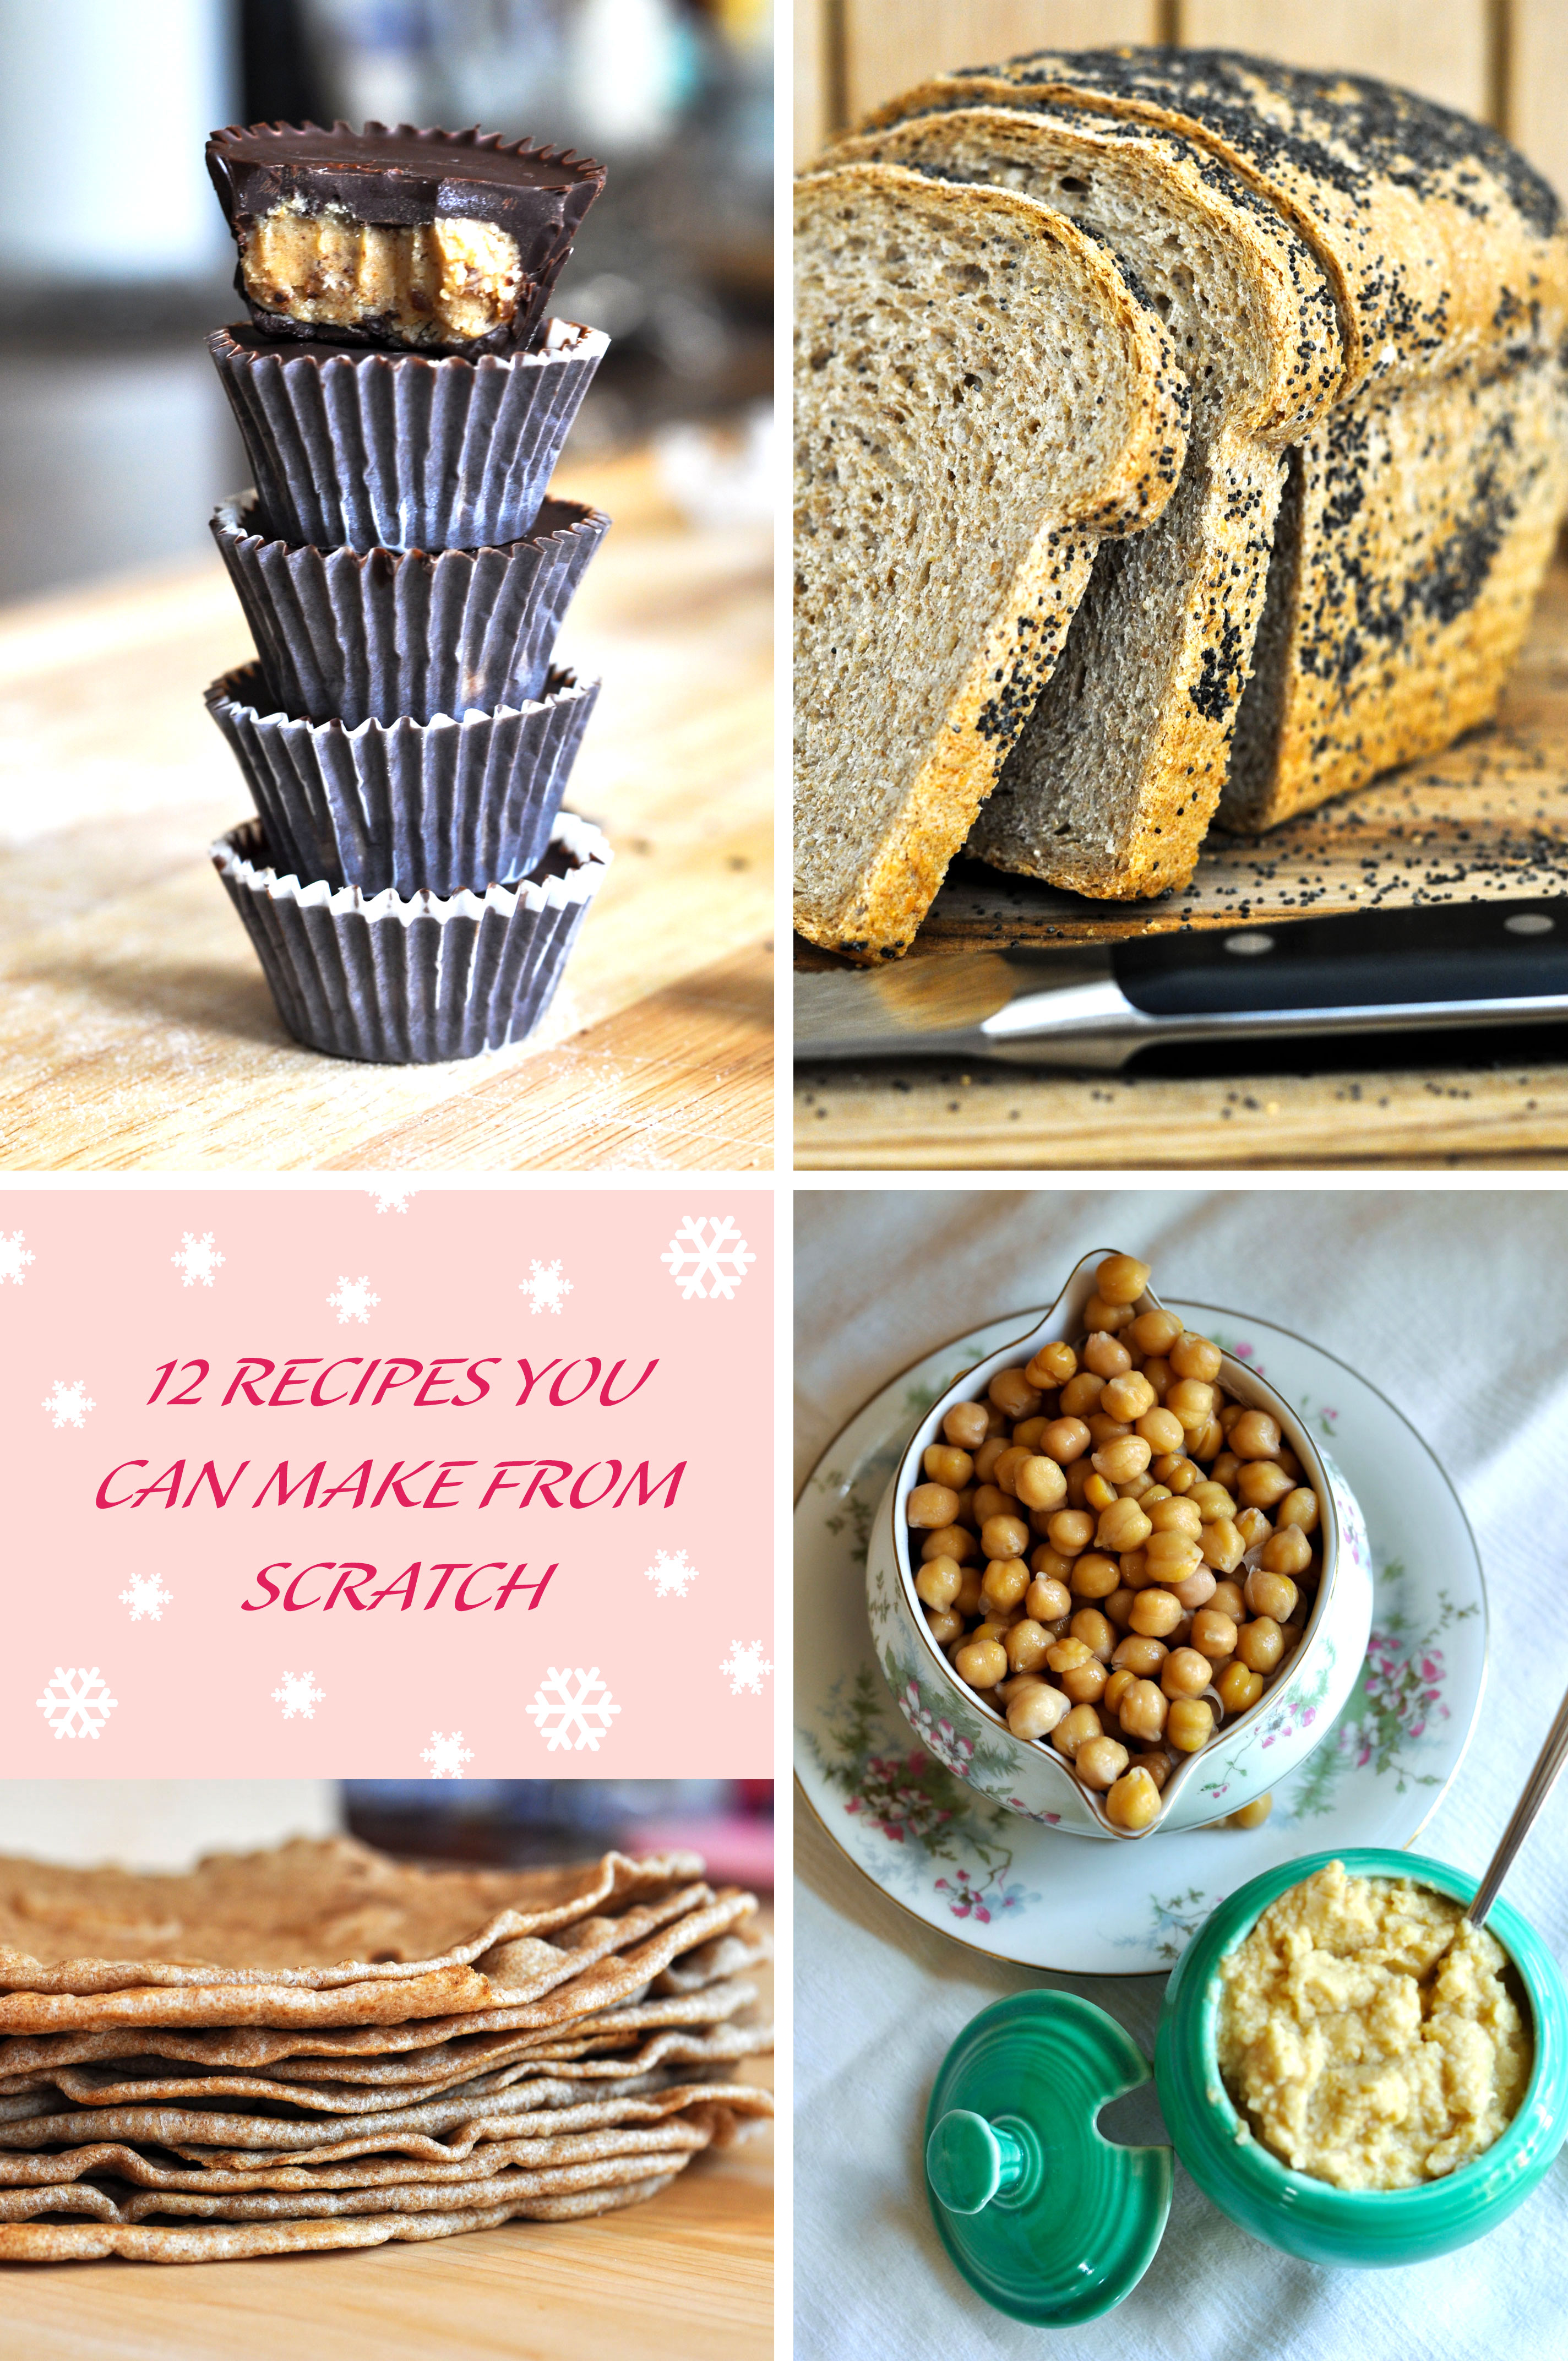 Recipe Round-up 12 Baking/Cooking From Scratch Recipes